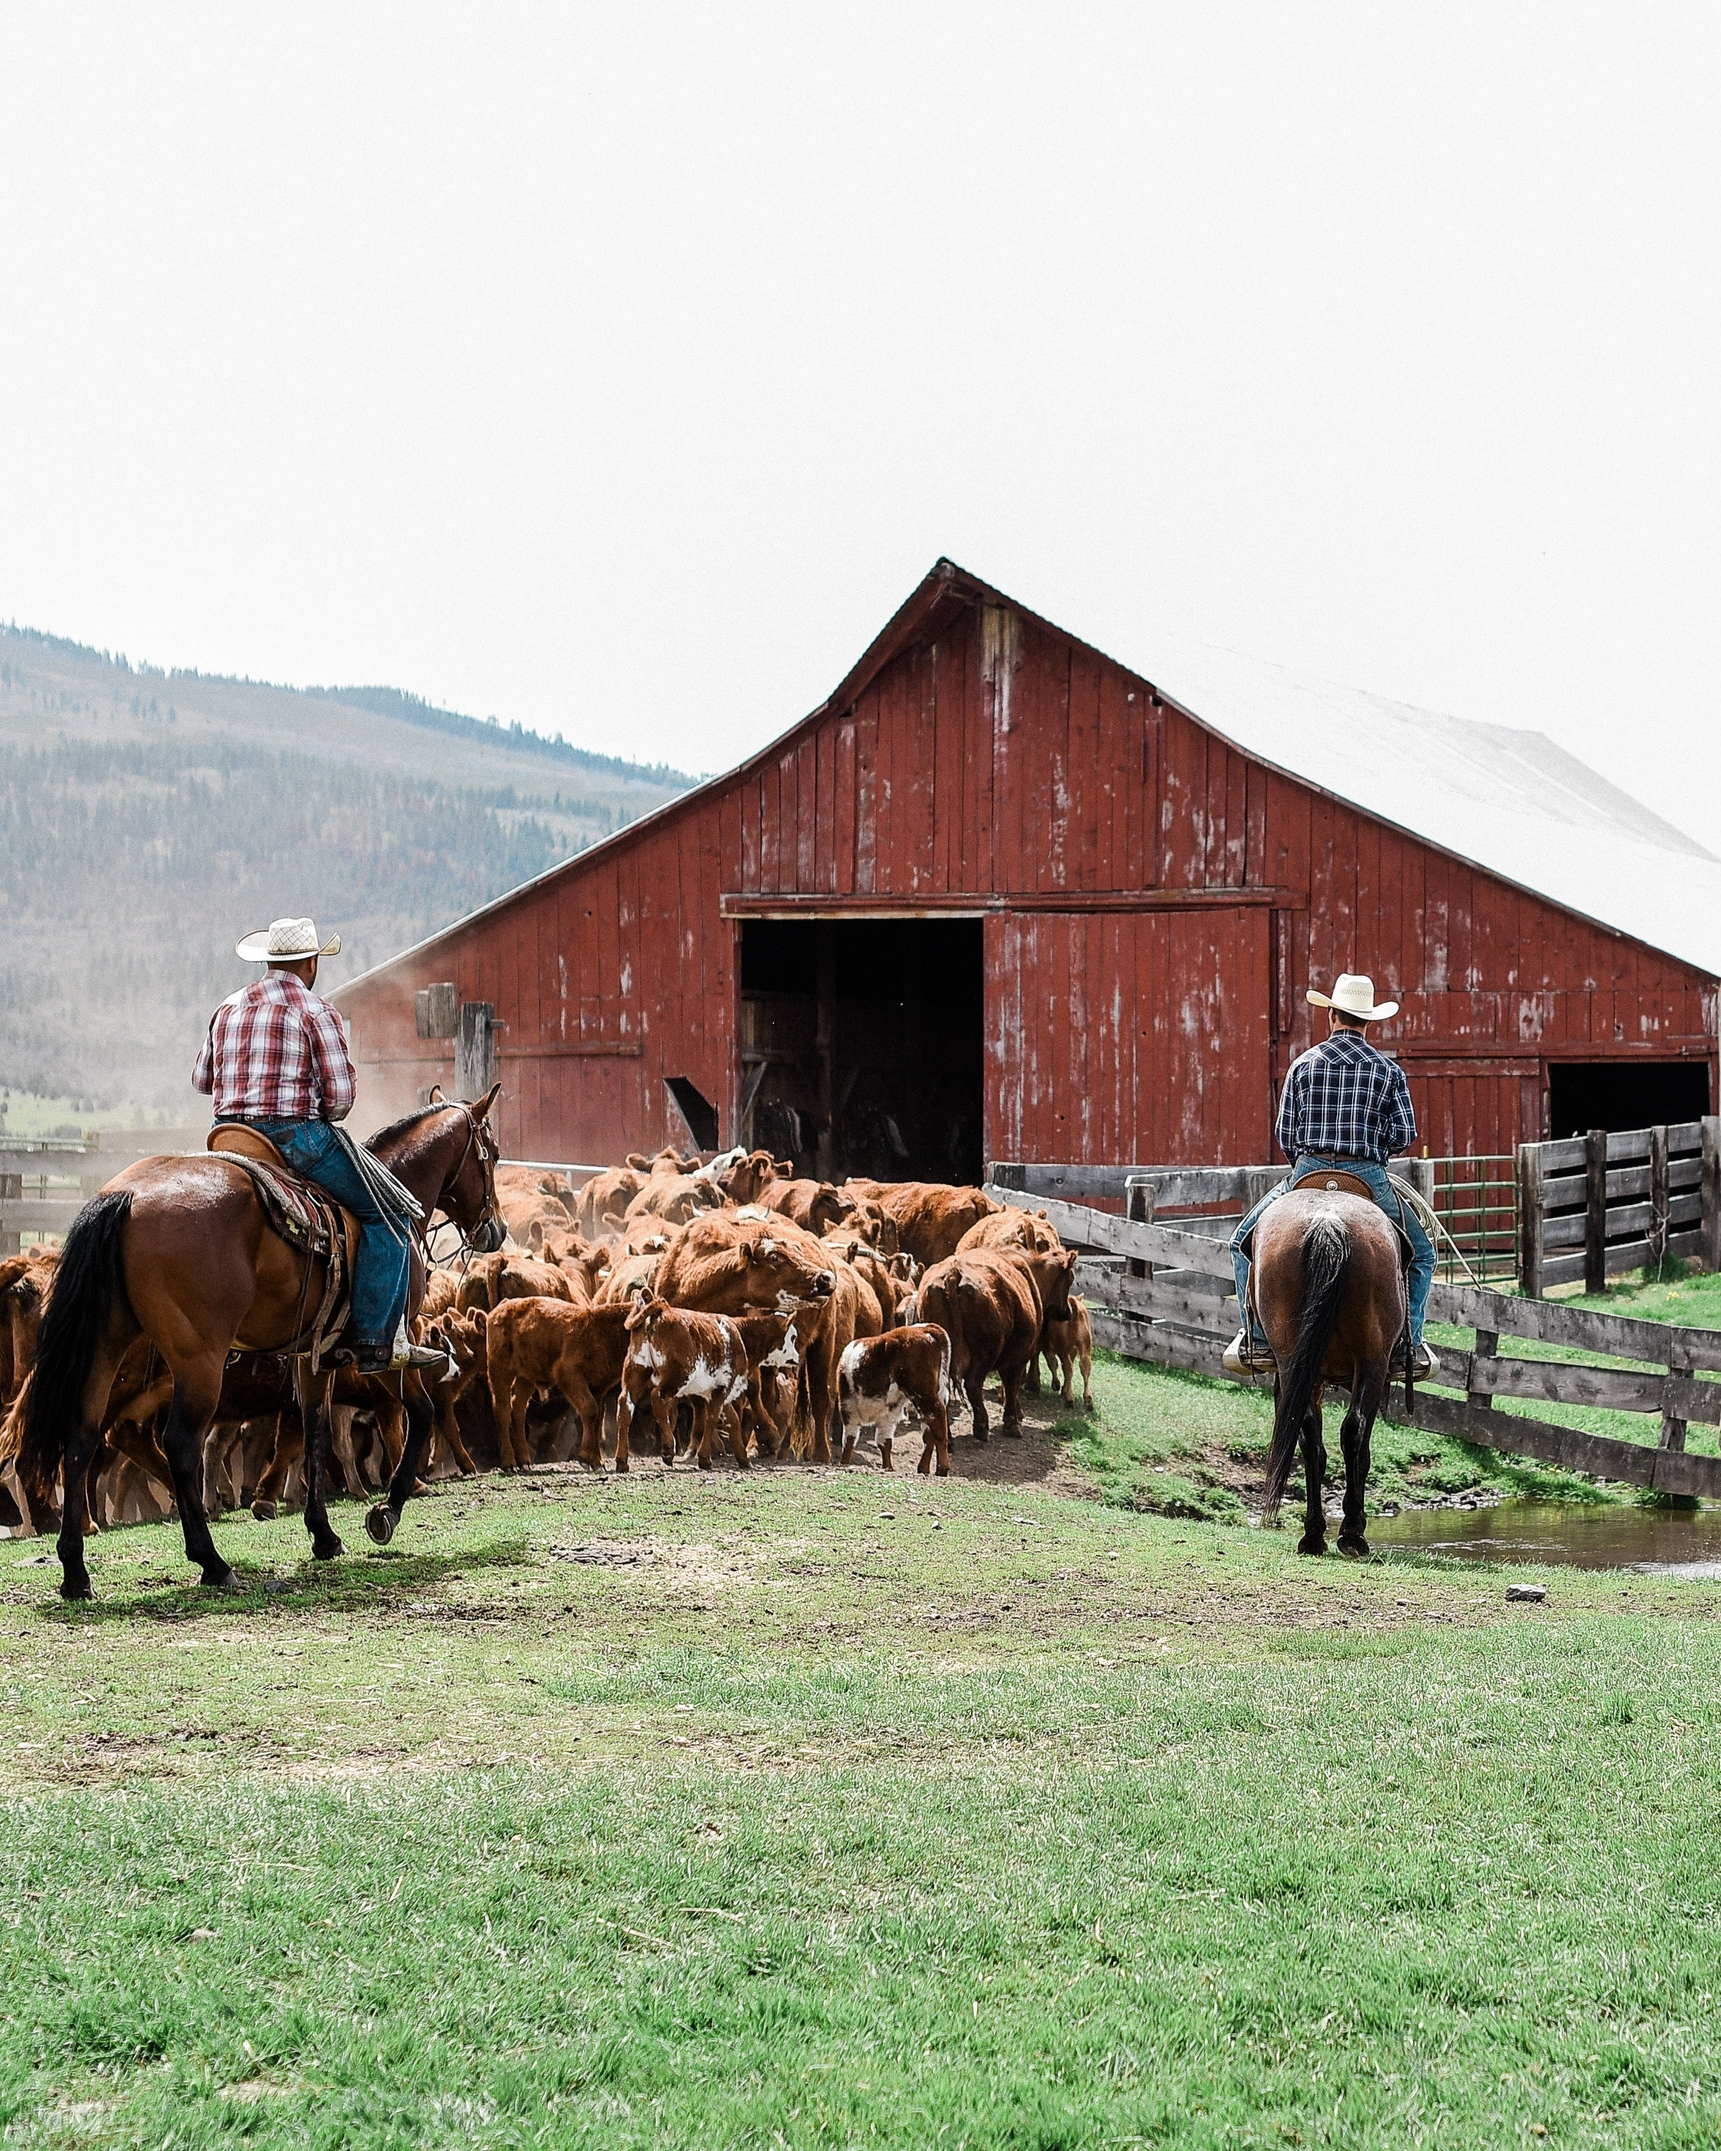 Read our story - Read about our story on the ranch, the history of the land and about our journey in Northern CA.